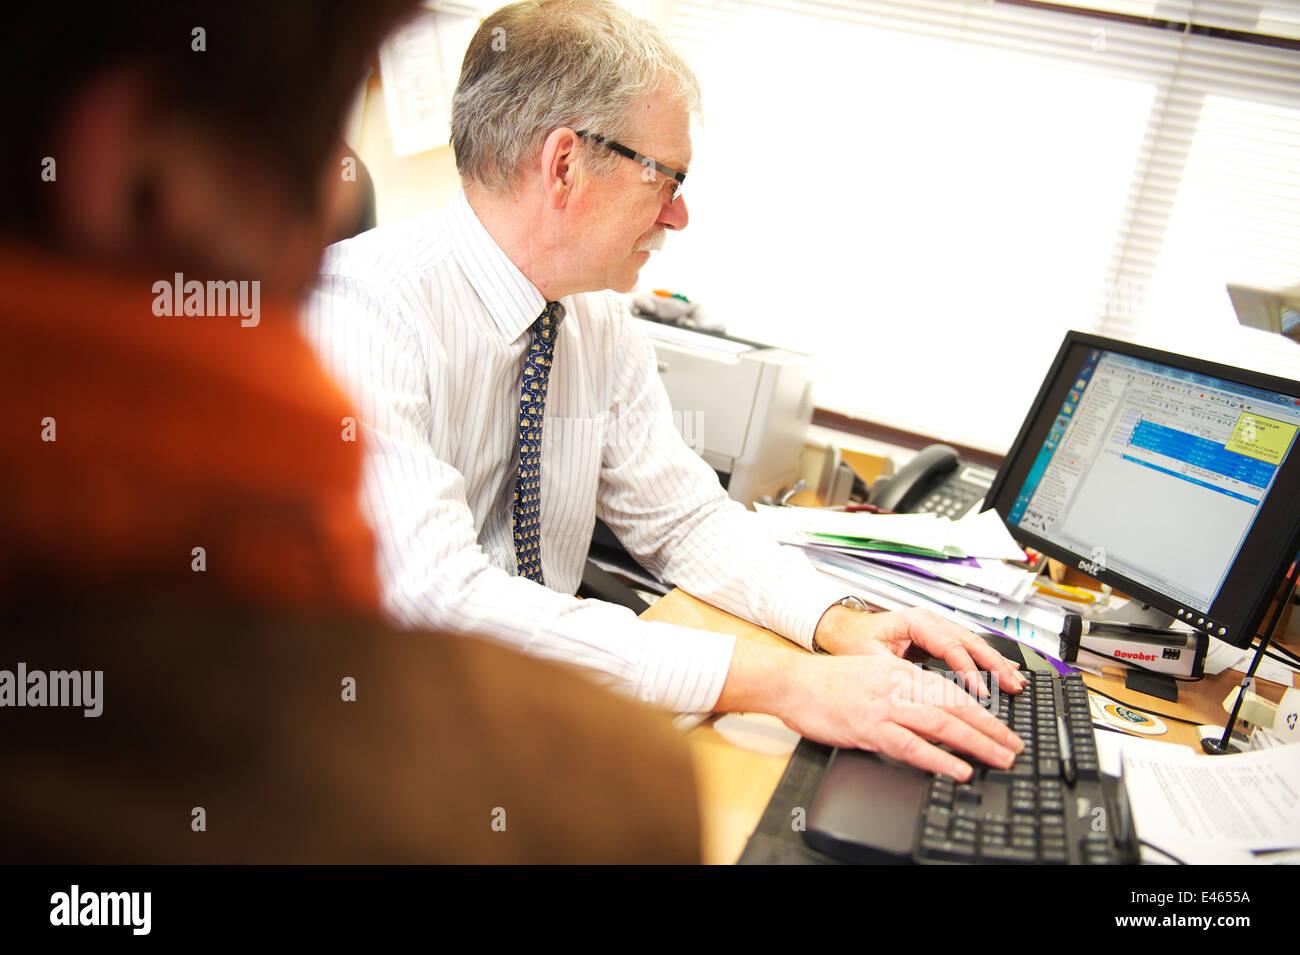 Male GP in patient consultation, looking up digital medical records - Stock Image